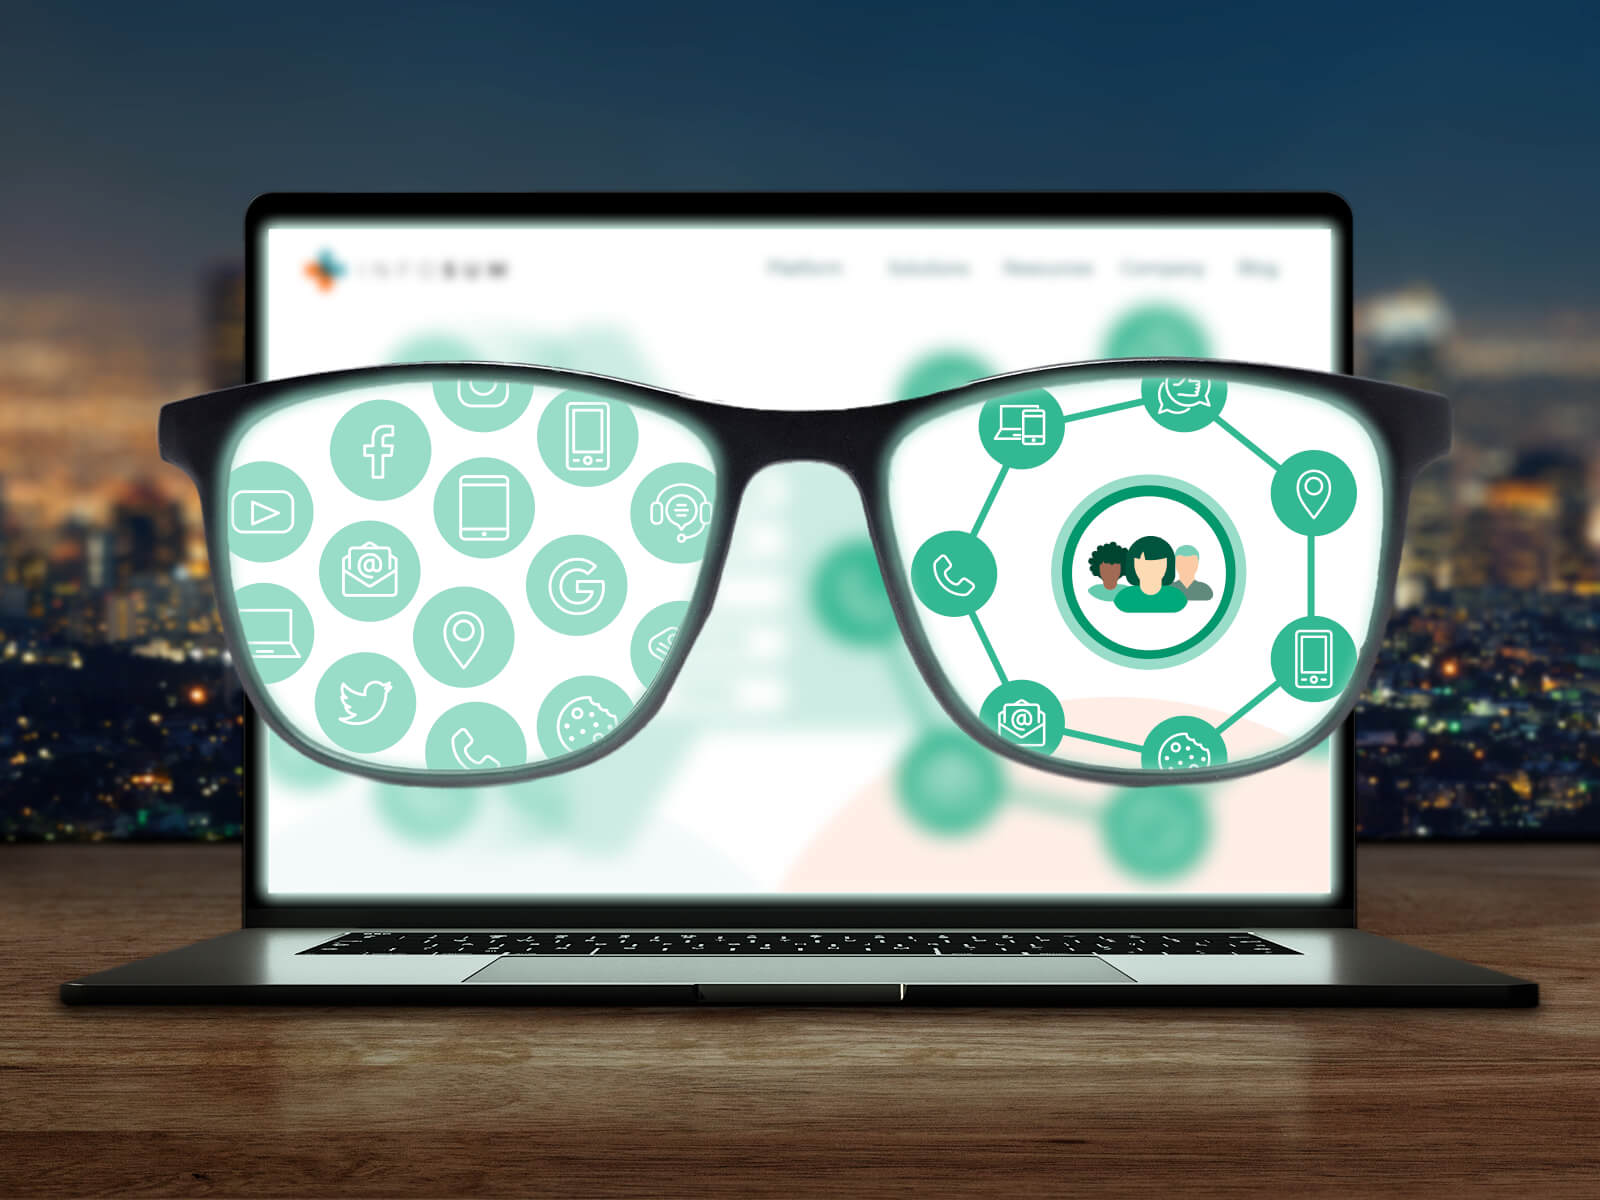 2020 Vision: Why data onboarding needs to evolve